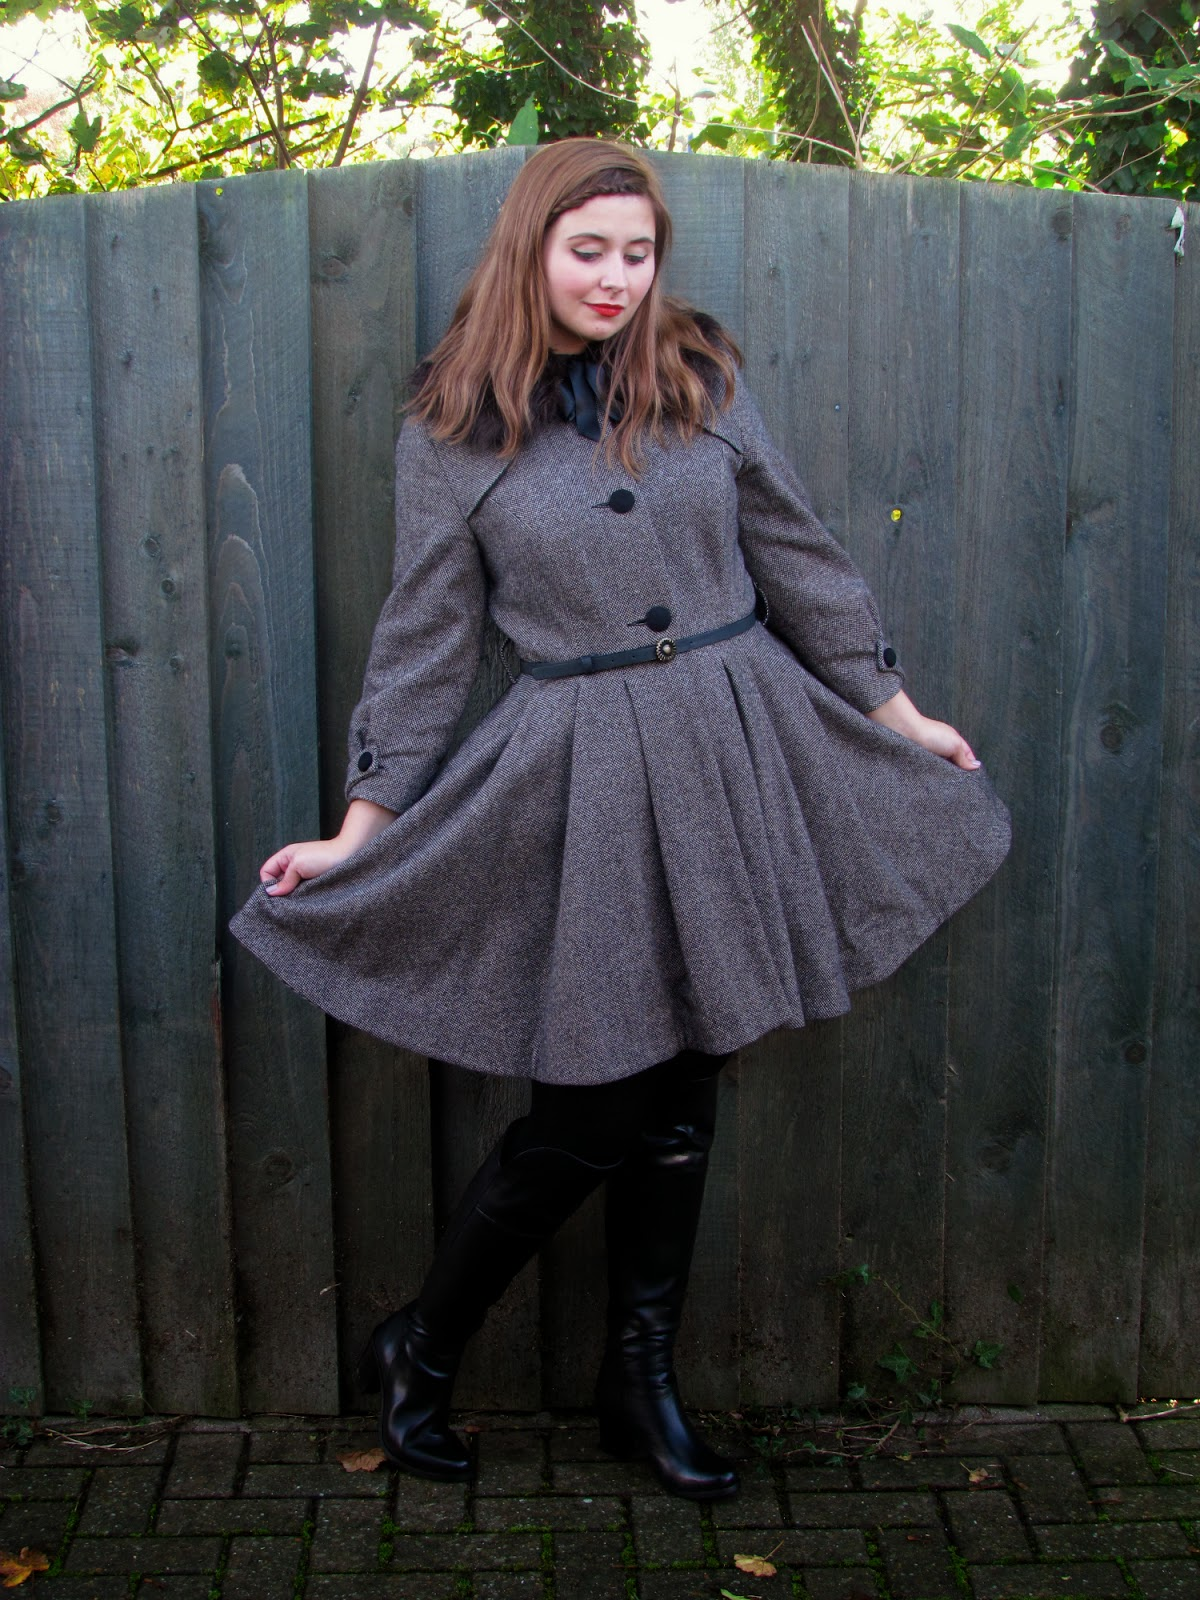 topshop-duo-coat-boots-fur-leather-outfit-fashion-blogger